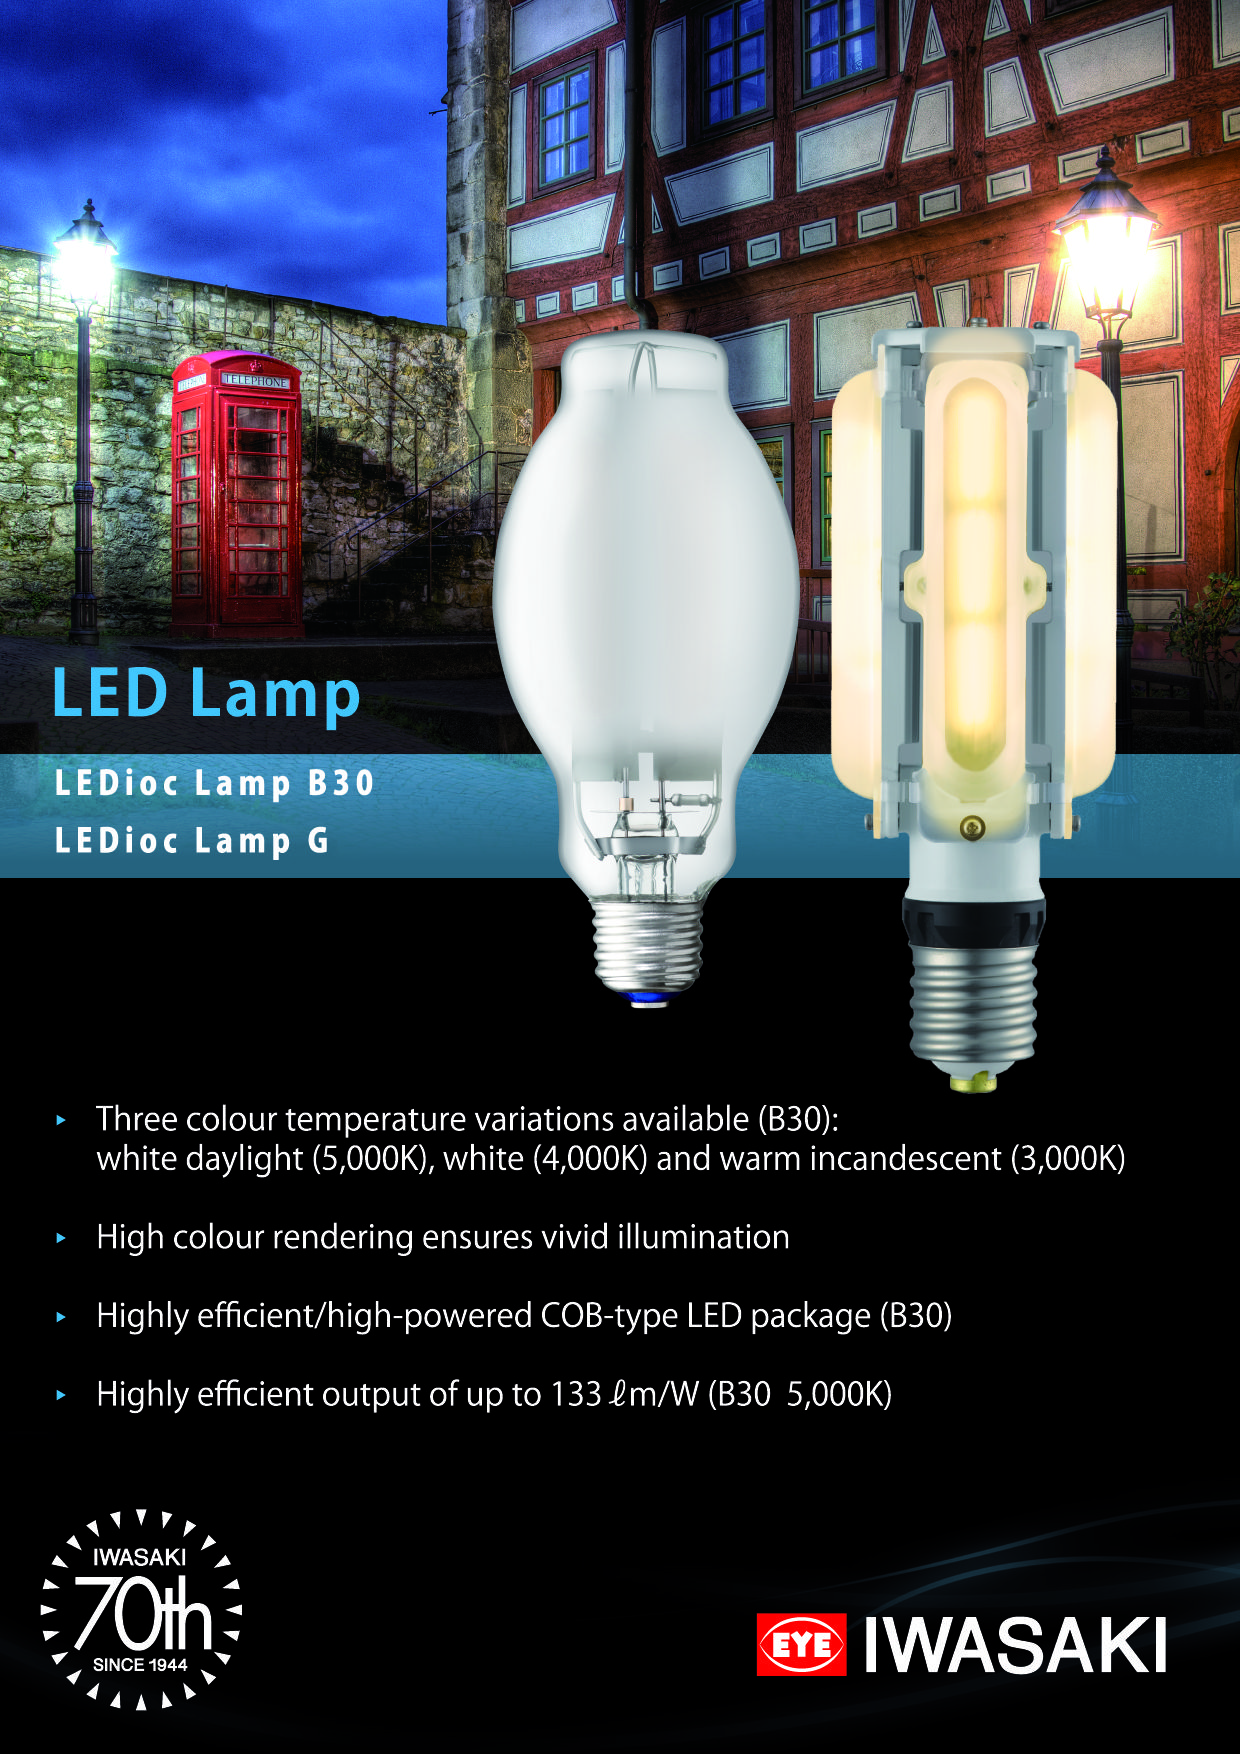 Promotional leaflet for EYE Lighting's retrofit LED